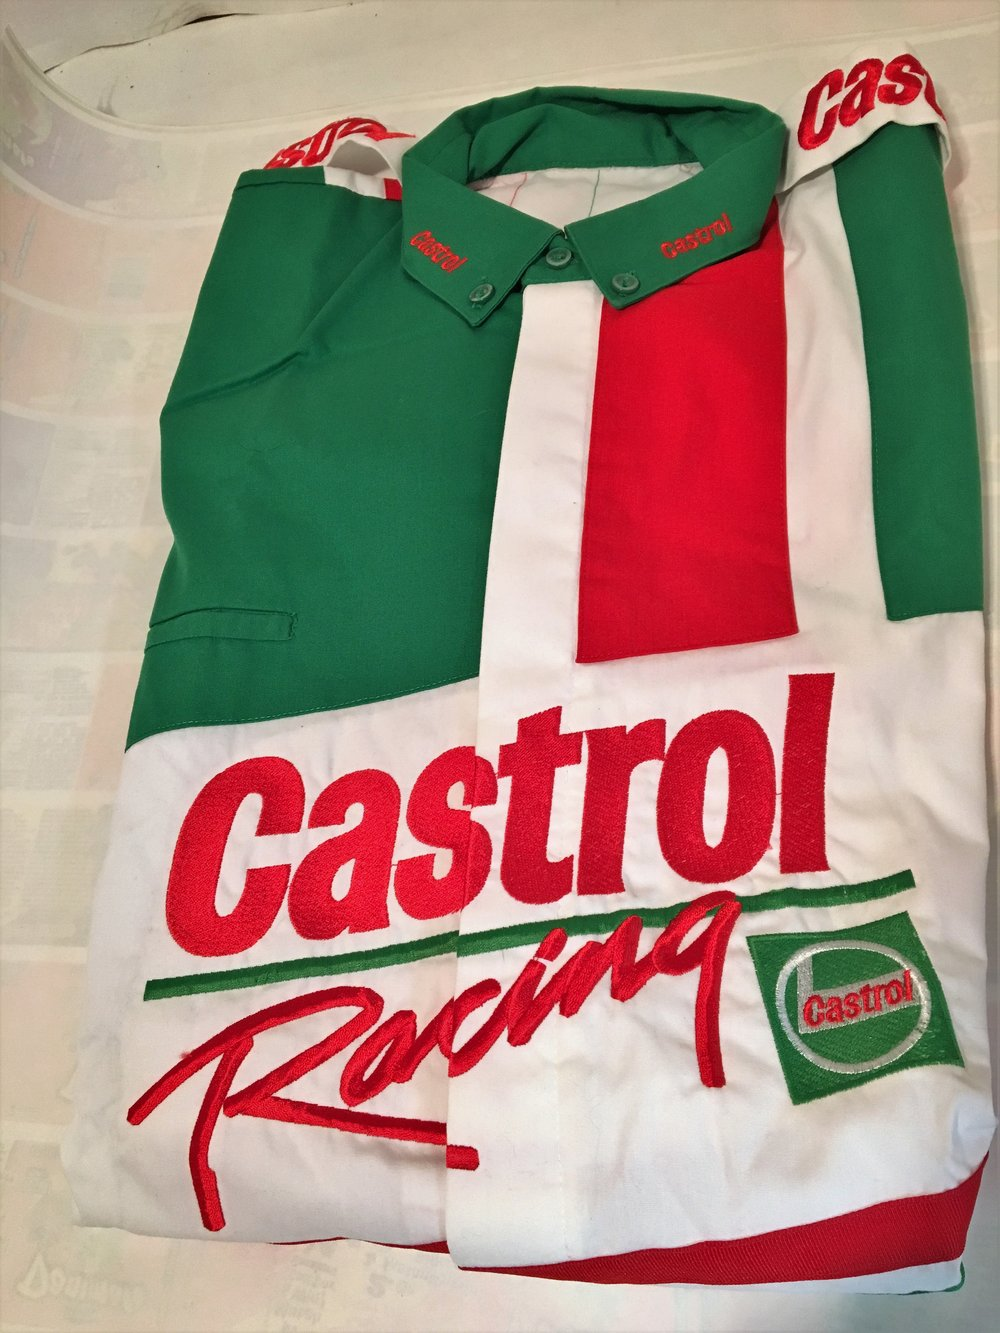 Castrol Racing Green Crew Shirt $25